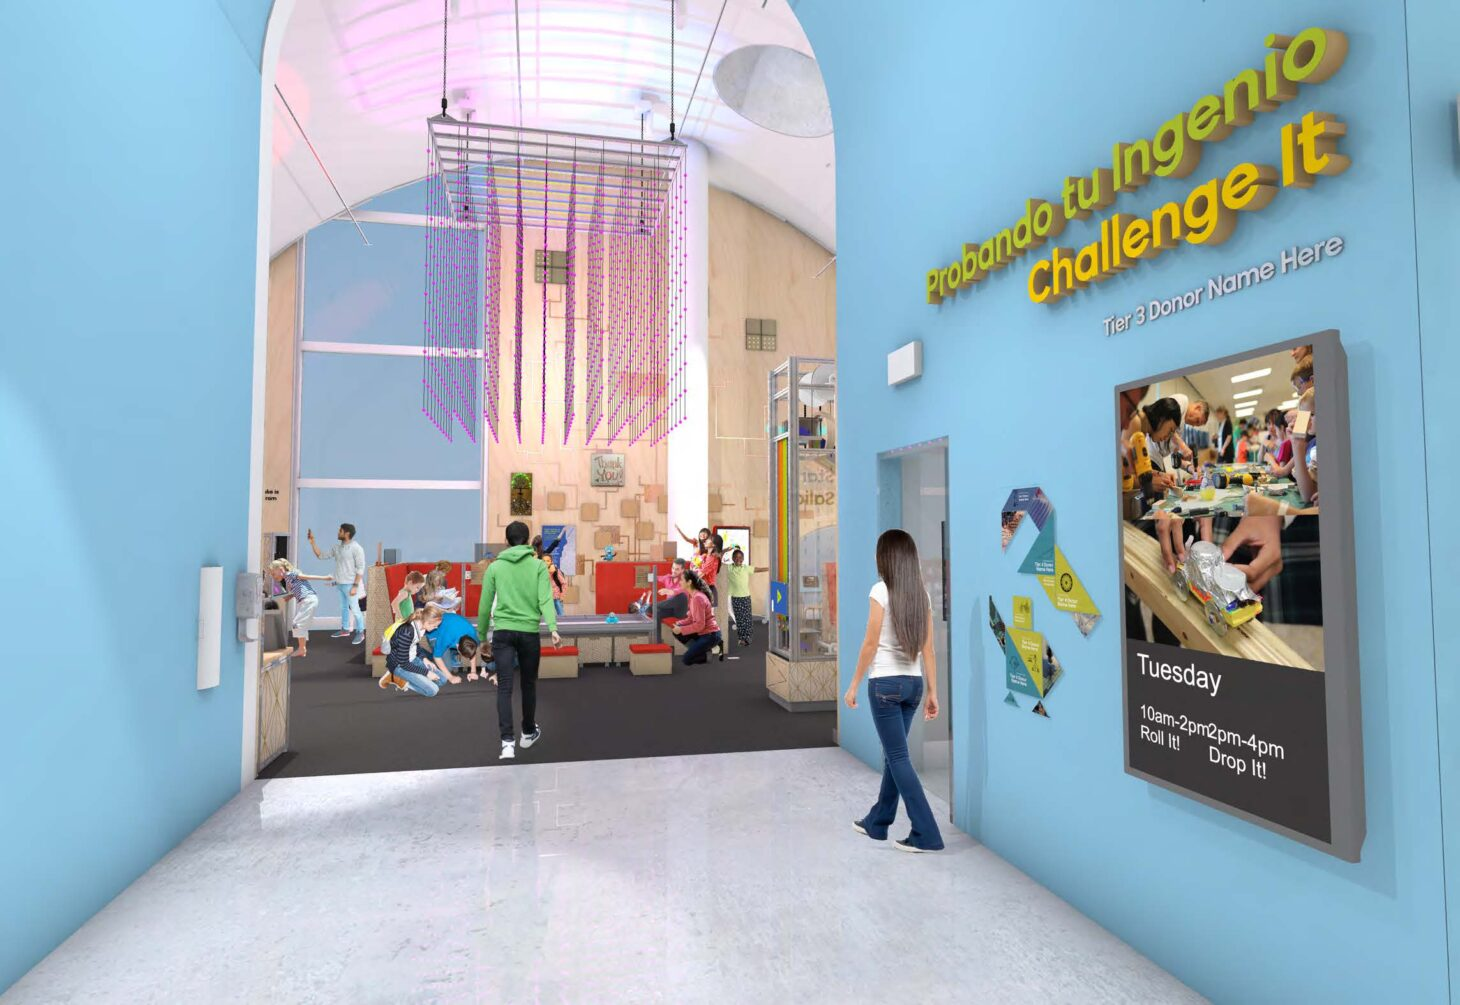 Rendering courtesy El Paso Children's Museum and Science Center